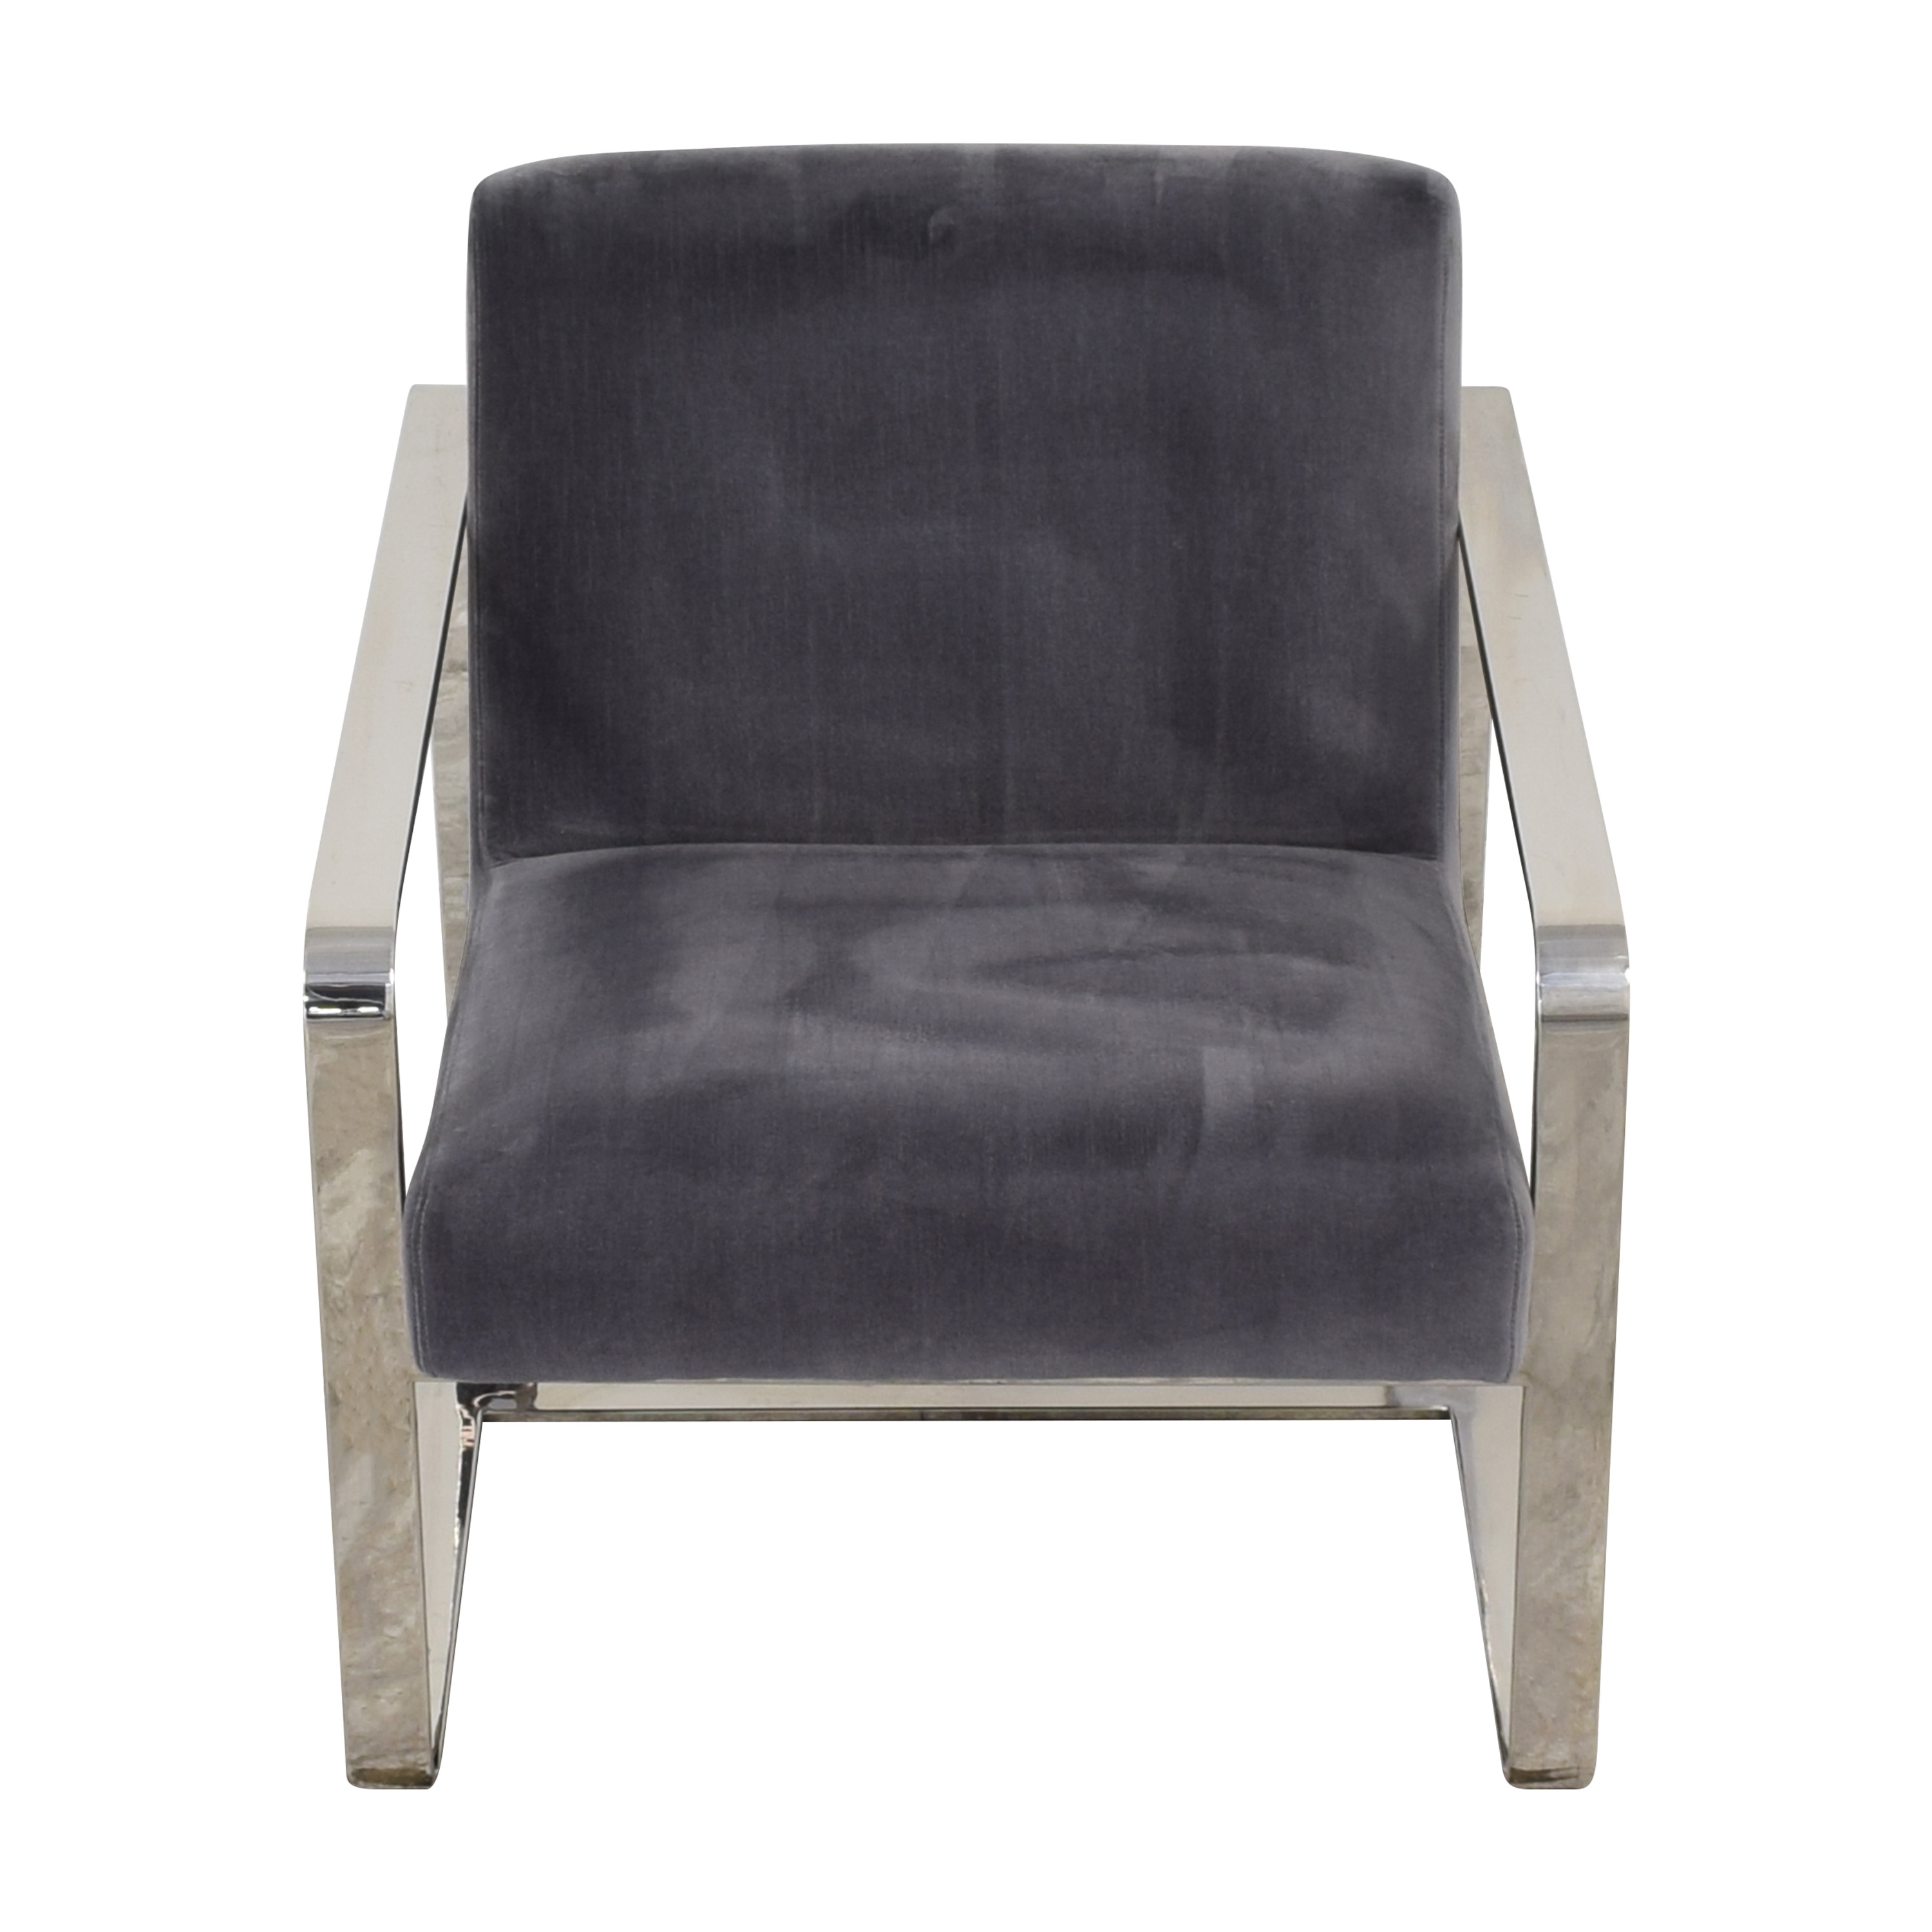 Restoration Hardware Restoration Hardware Miles Chair second hand